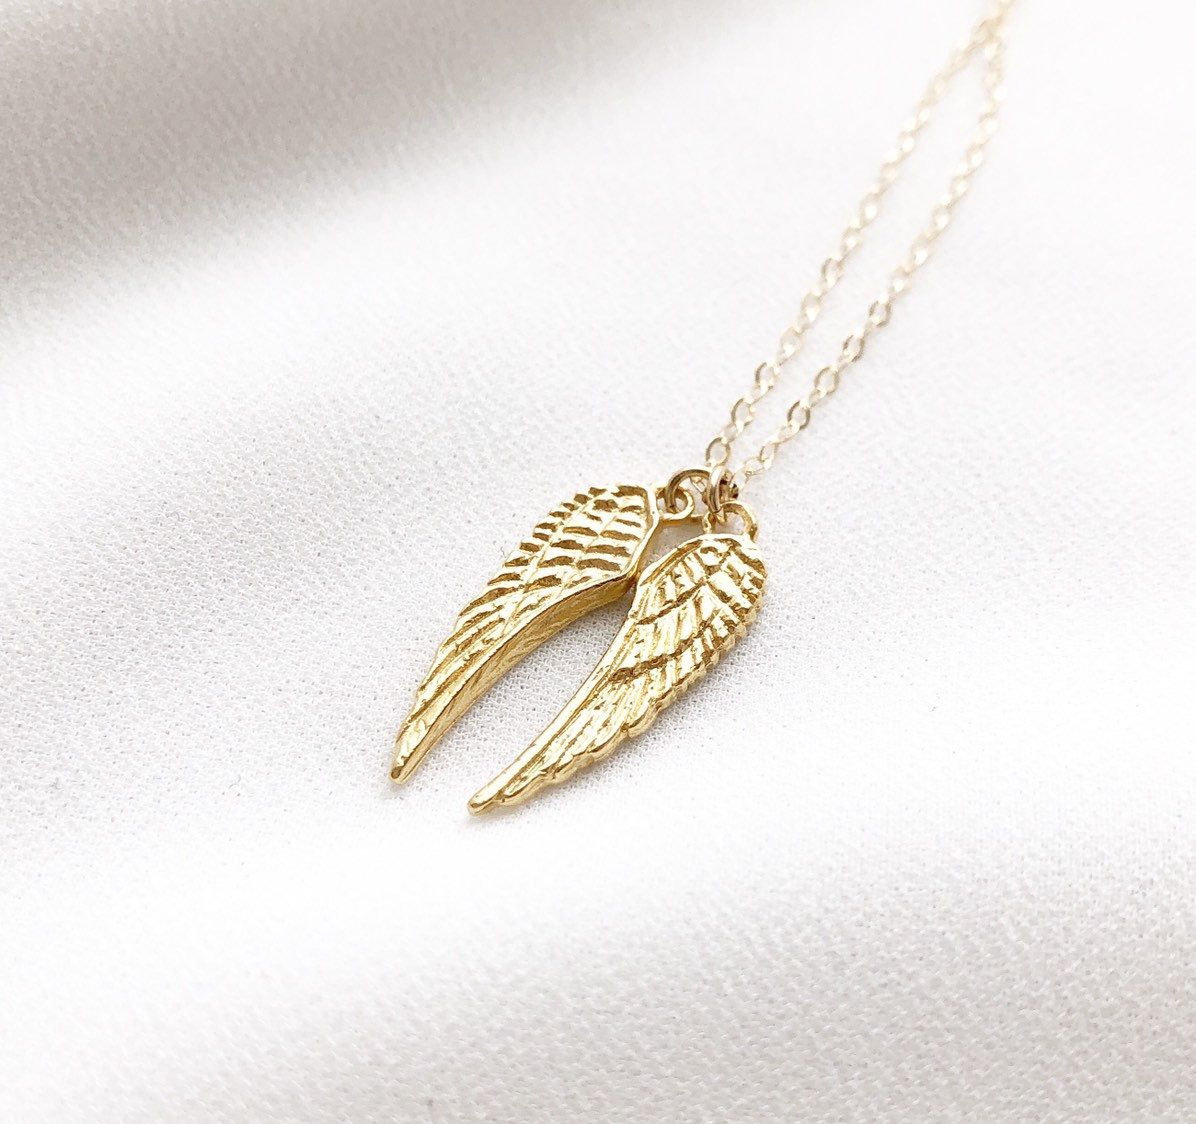 Angel Wings Necklace Rose Gold Or Gold Angel Wings Necklace Angel Wing Jewelry Memorial Necklace Angel Wings Jewelry Swarovski Jewelry Necklace Wing Jewelry